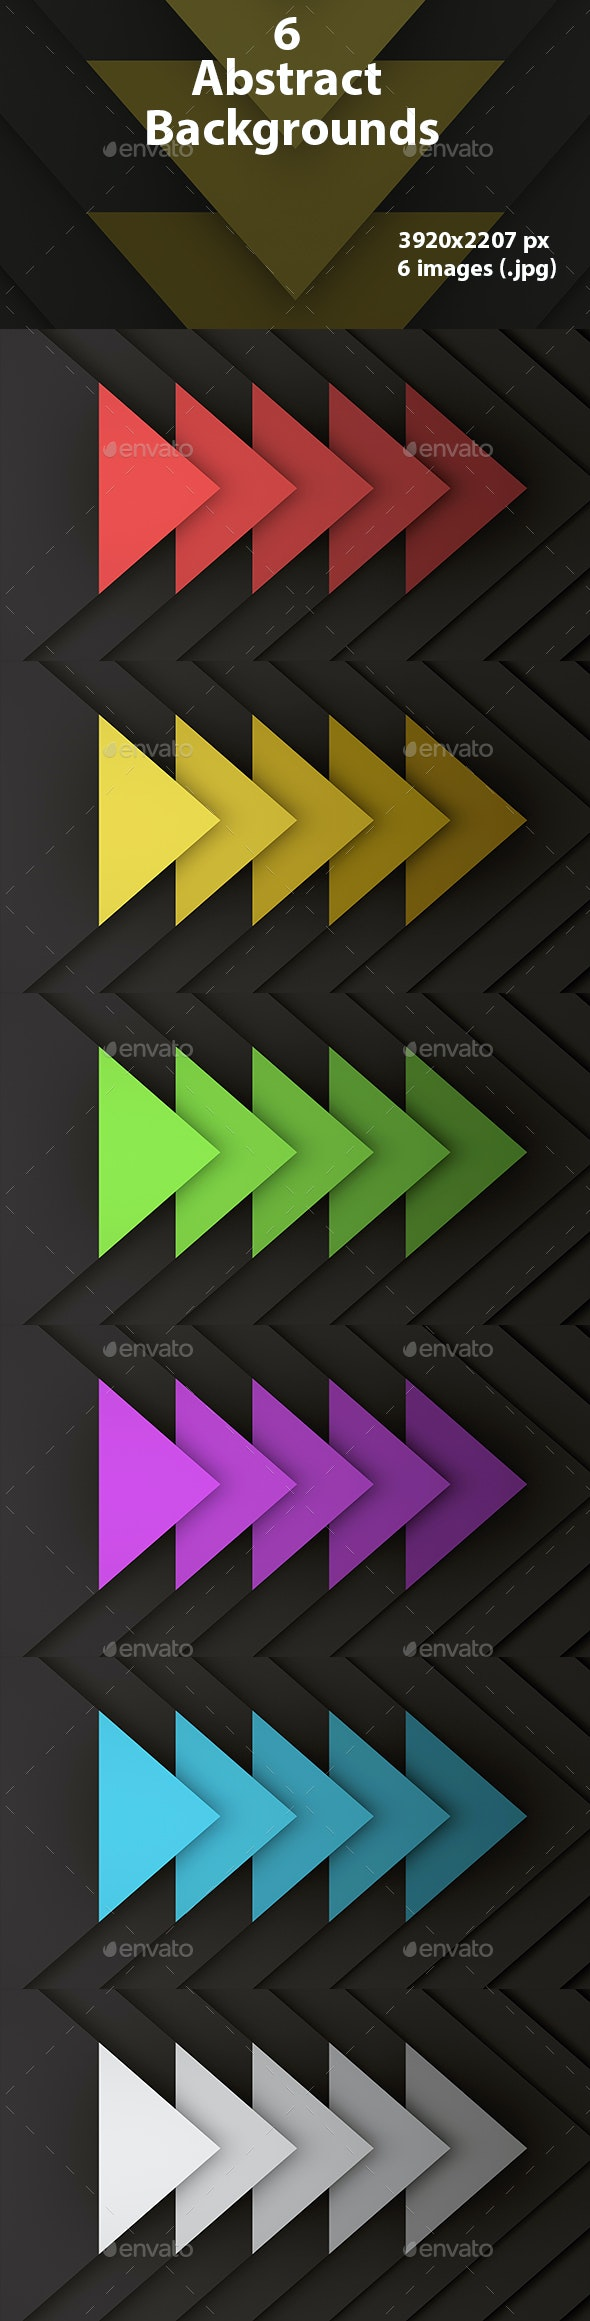 6 Abstract Backgrounds - Abstract Backgrounds